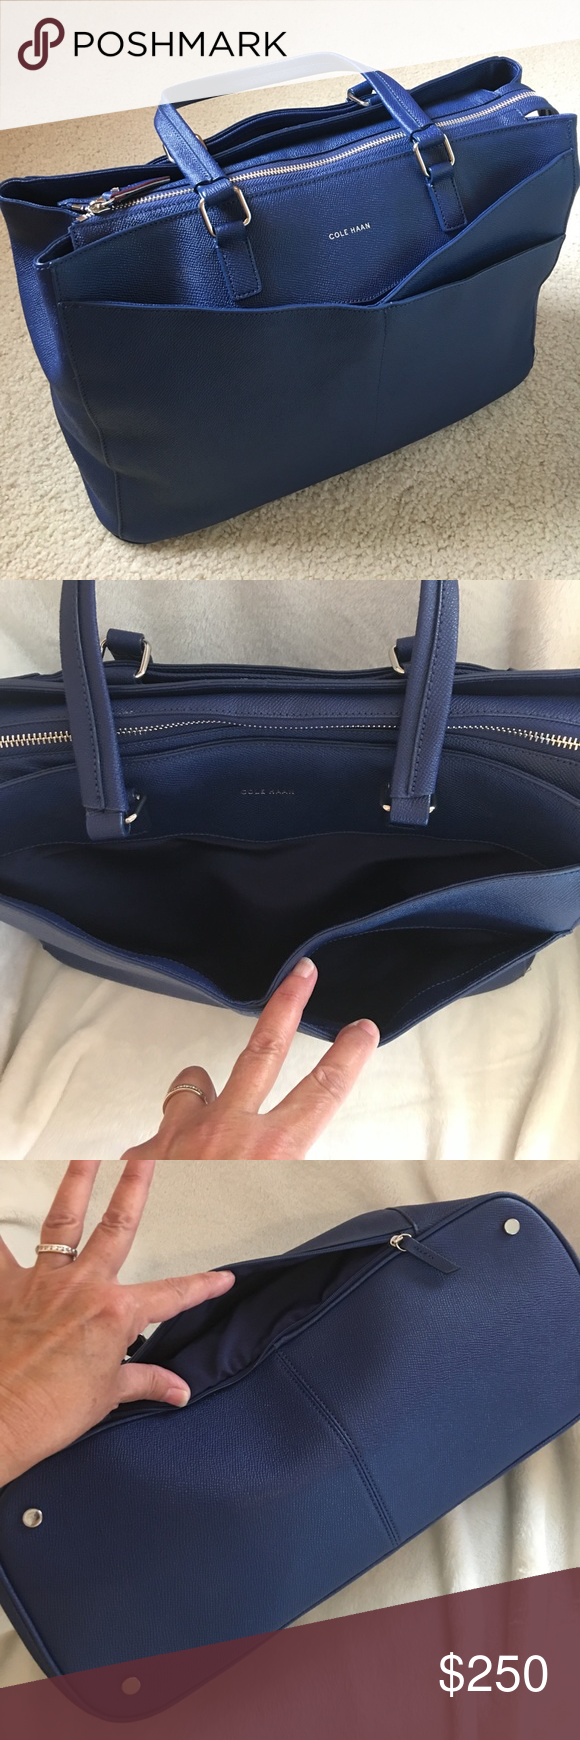 Nwot Cole Haan Large Blue Tote When American Airlines Merged With Us Air